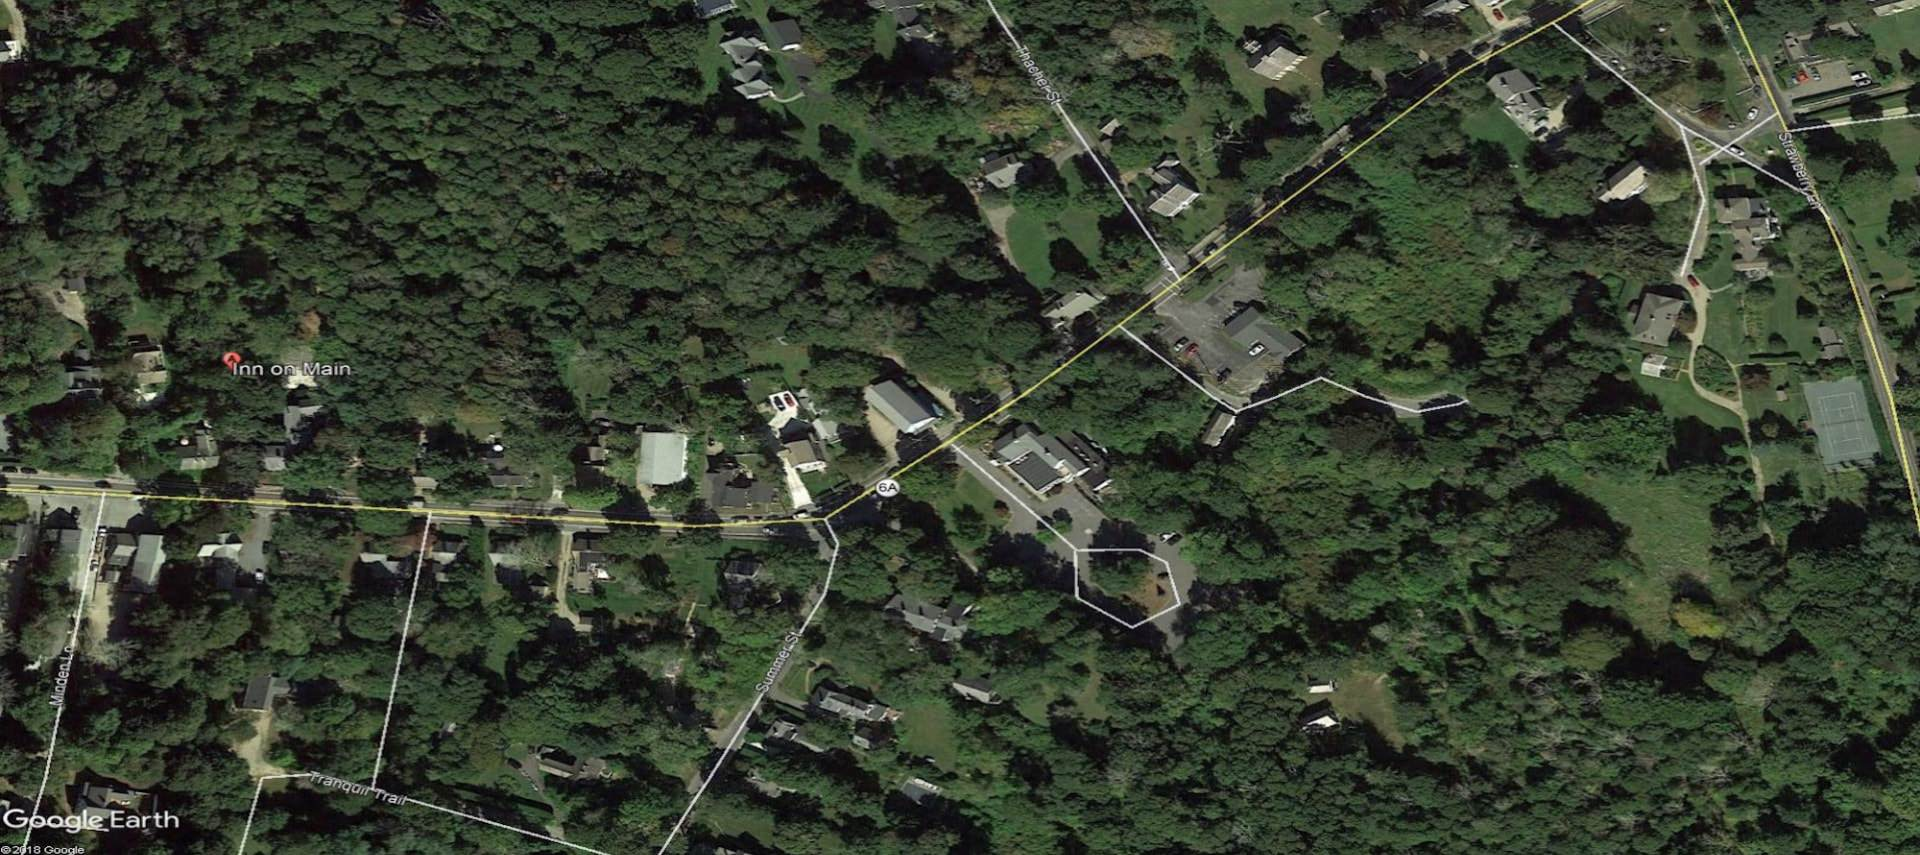 Satelite view of Inn on Main property surrounded by trees and other properties